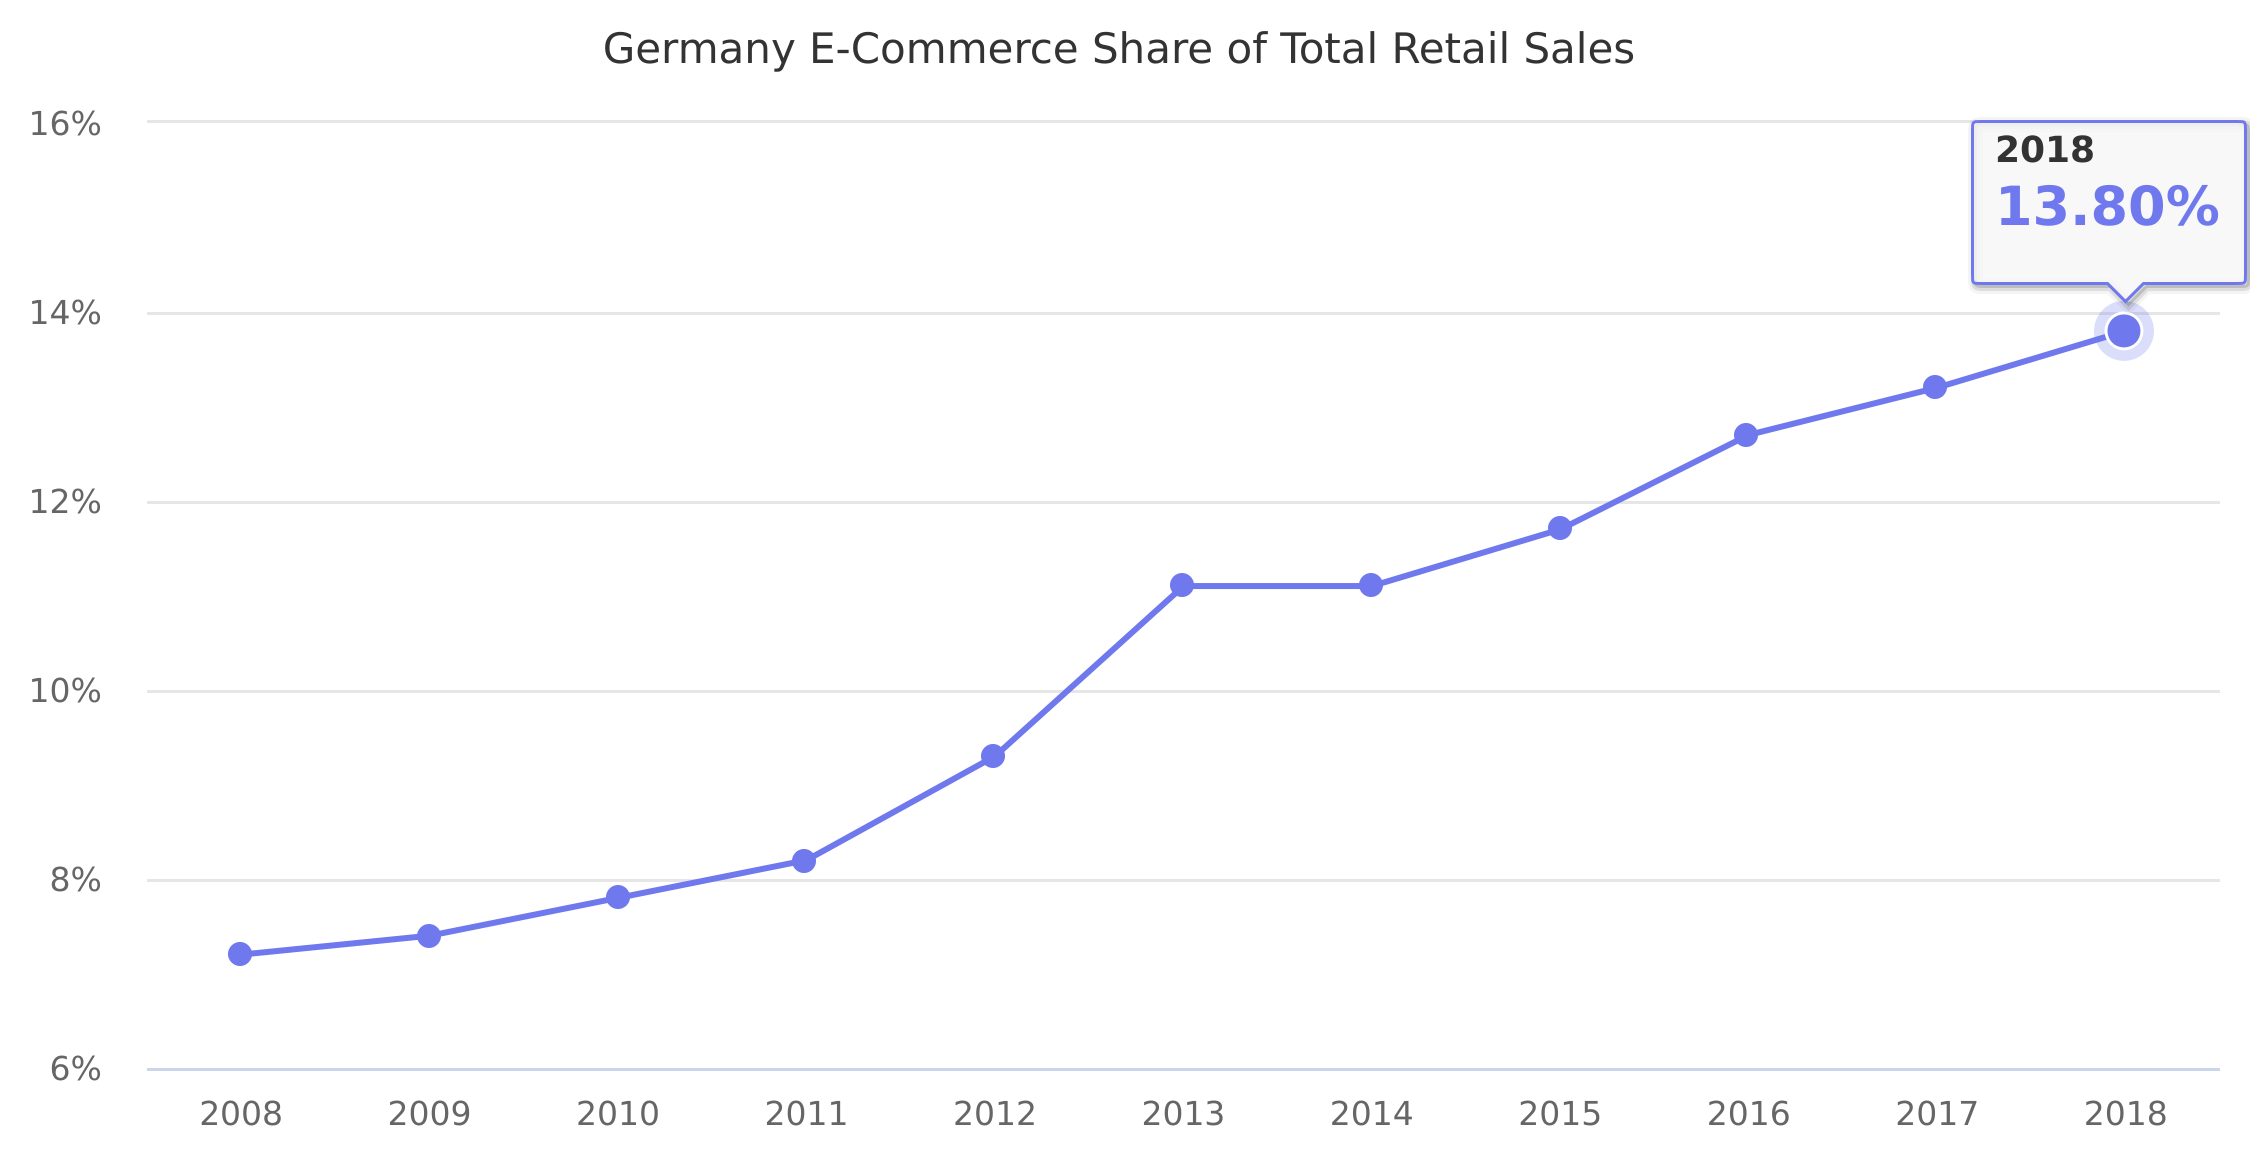 Germany E-Commerce Share of Total Retail Sales 2008-2017